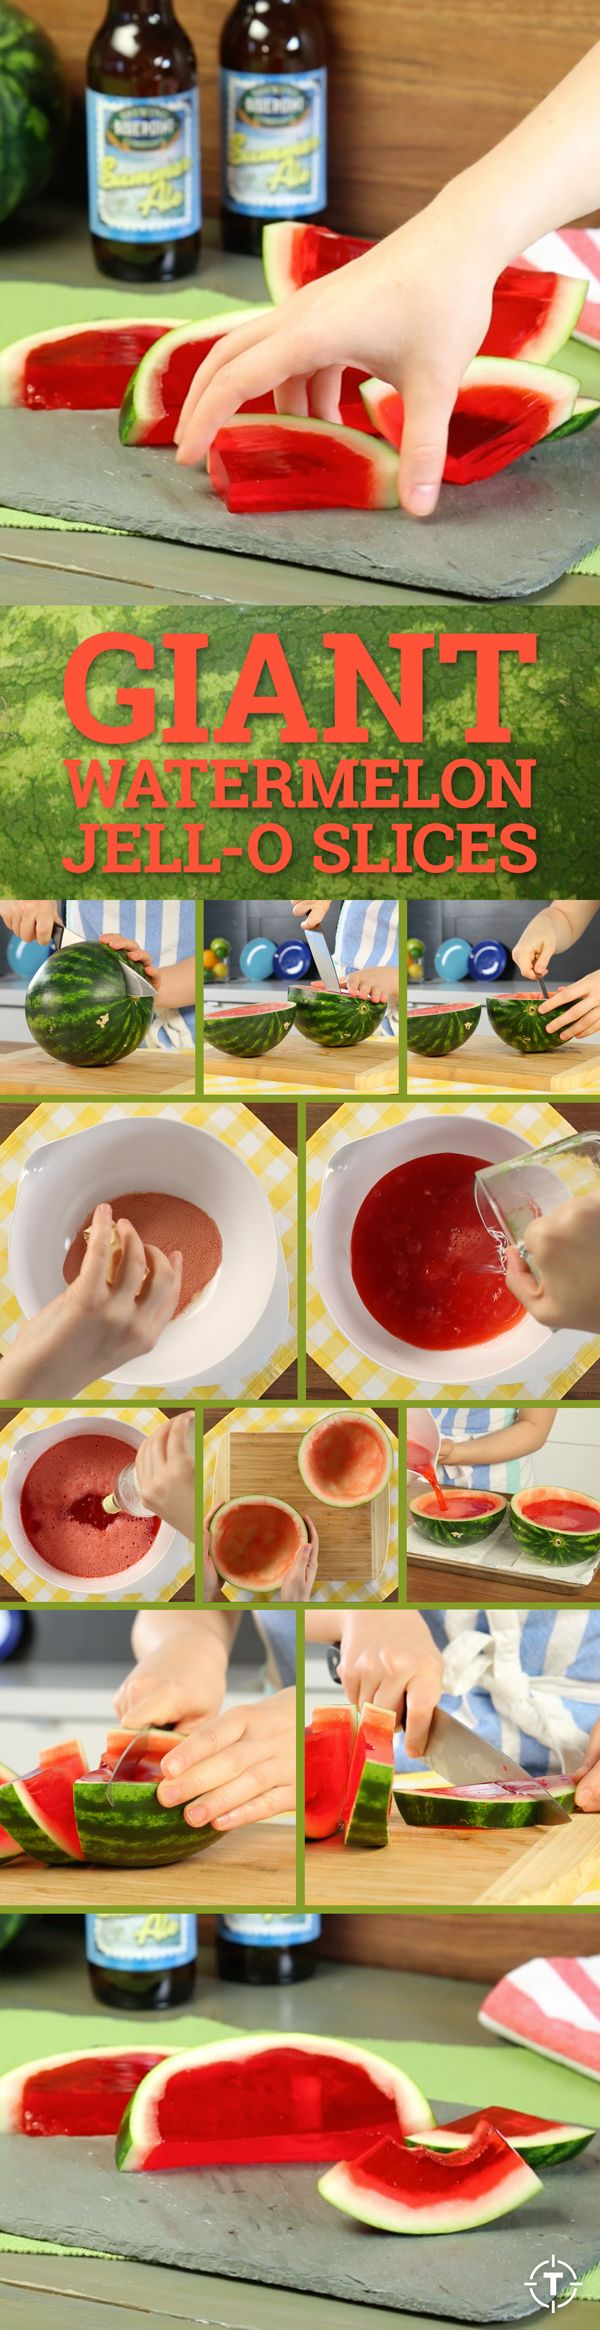 Buzzfeed's vodka-filled watermelon Jell-O slices prove that, sometimes, bigger is really better.